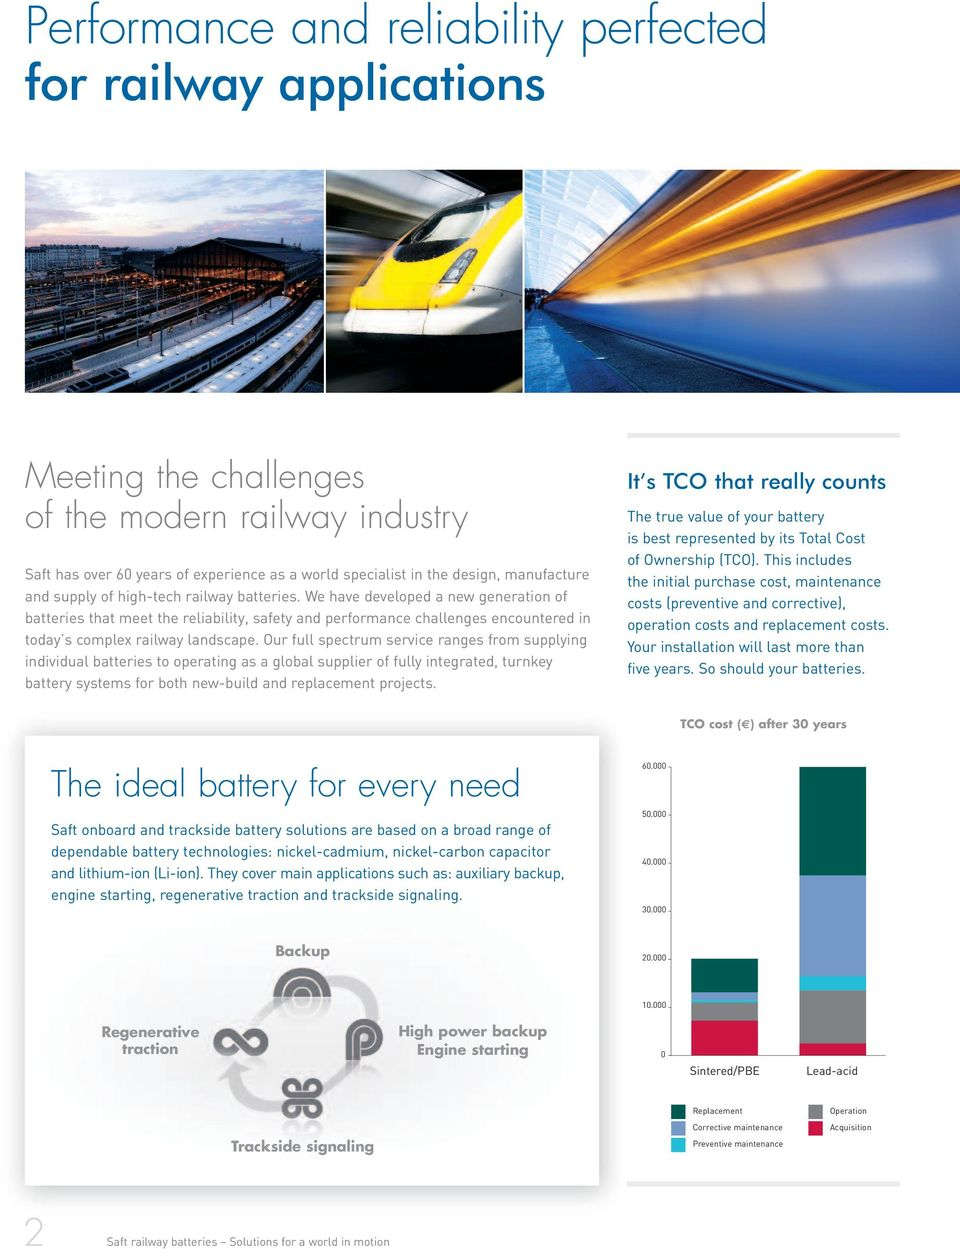 We have developed a new generation of batteries that meet the reliability, safety and performance challenges encountered in today s complex railway landscape.